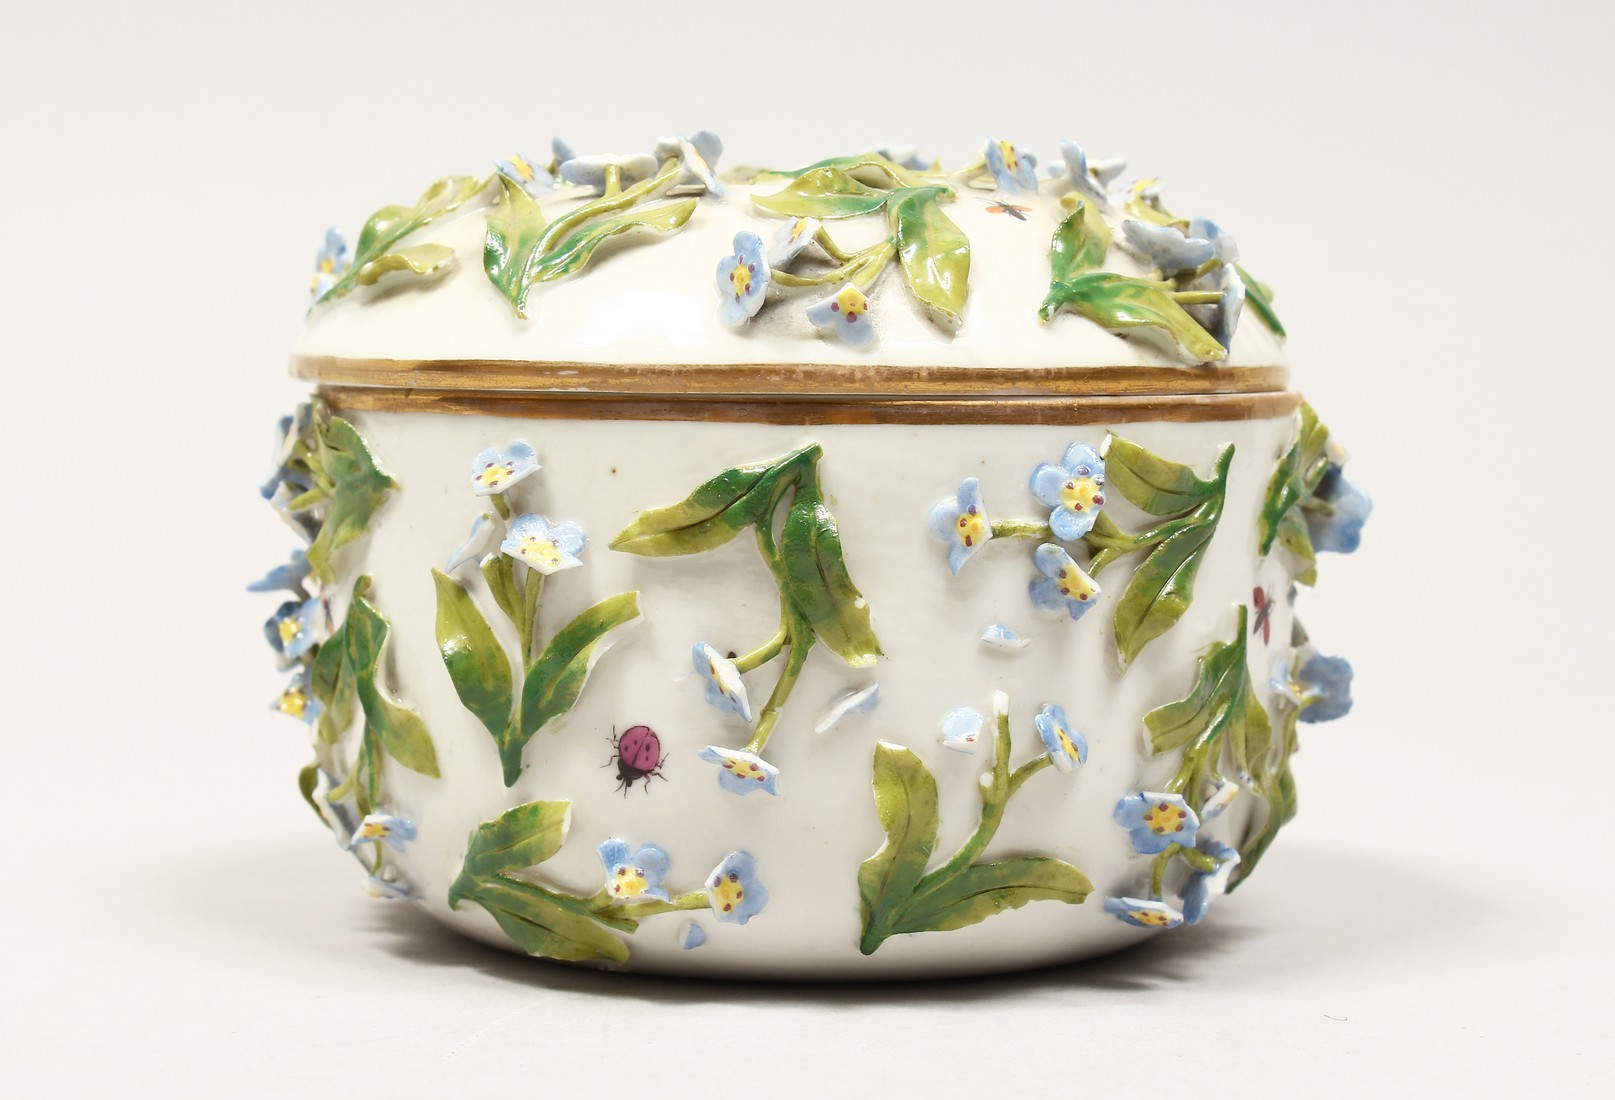 A DRESDON CIRCULAR BOWL AND COVER painted with moths and encrusted with flowers. 4.5ins diameter.